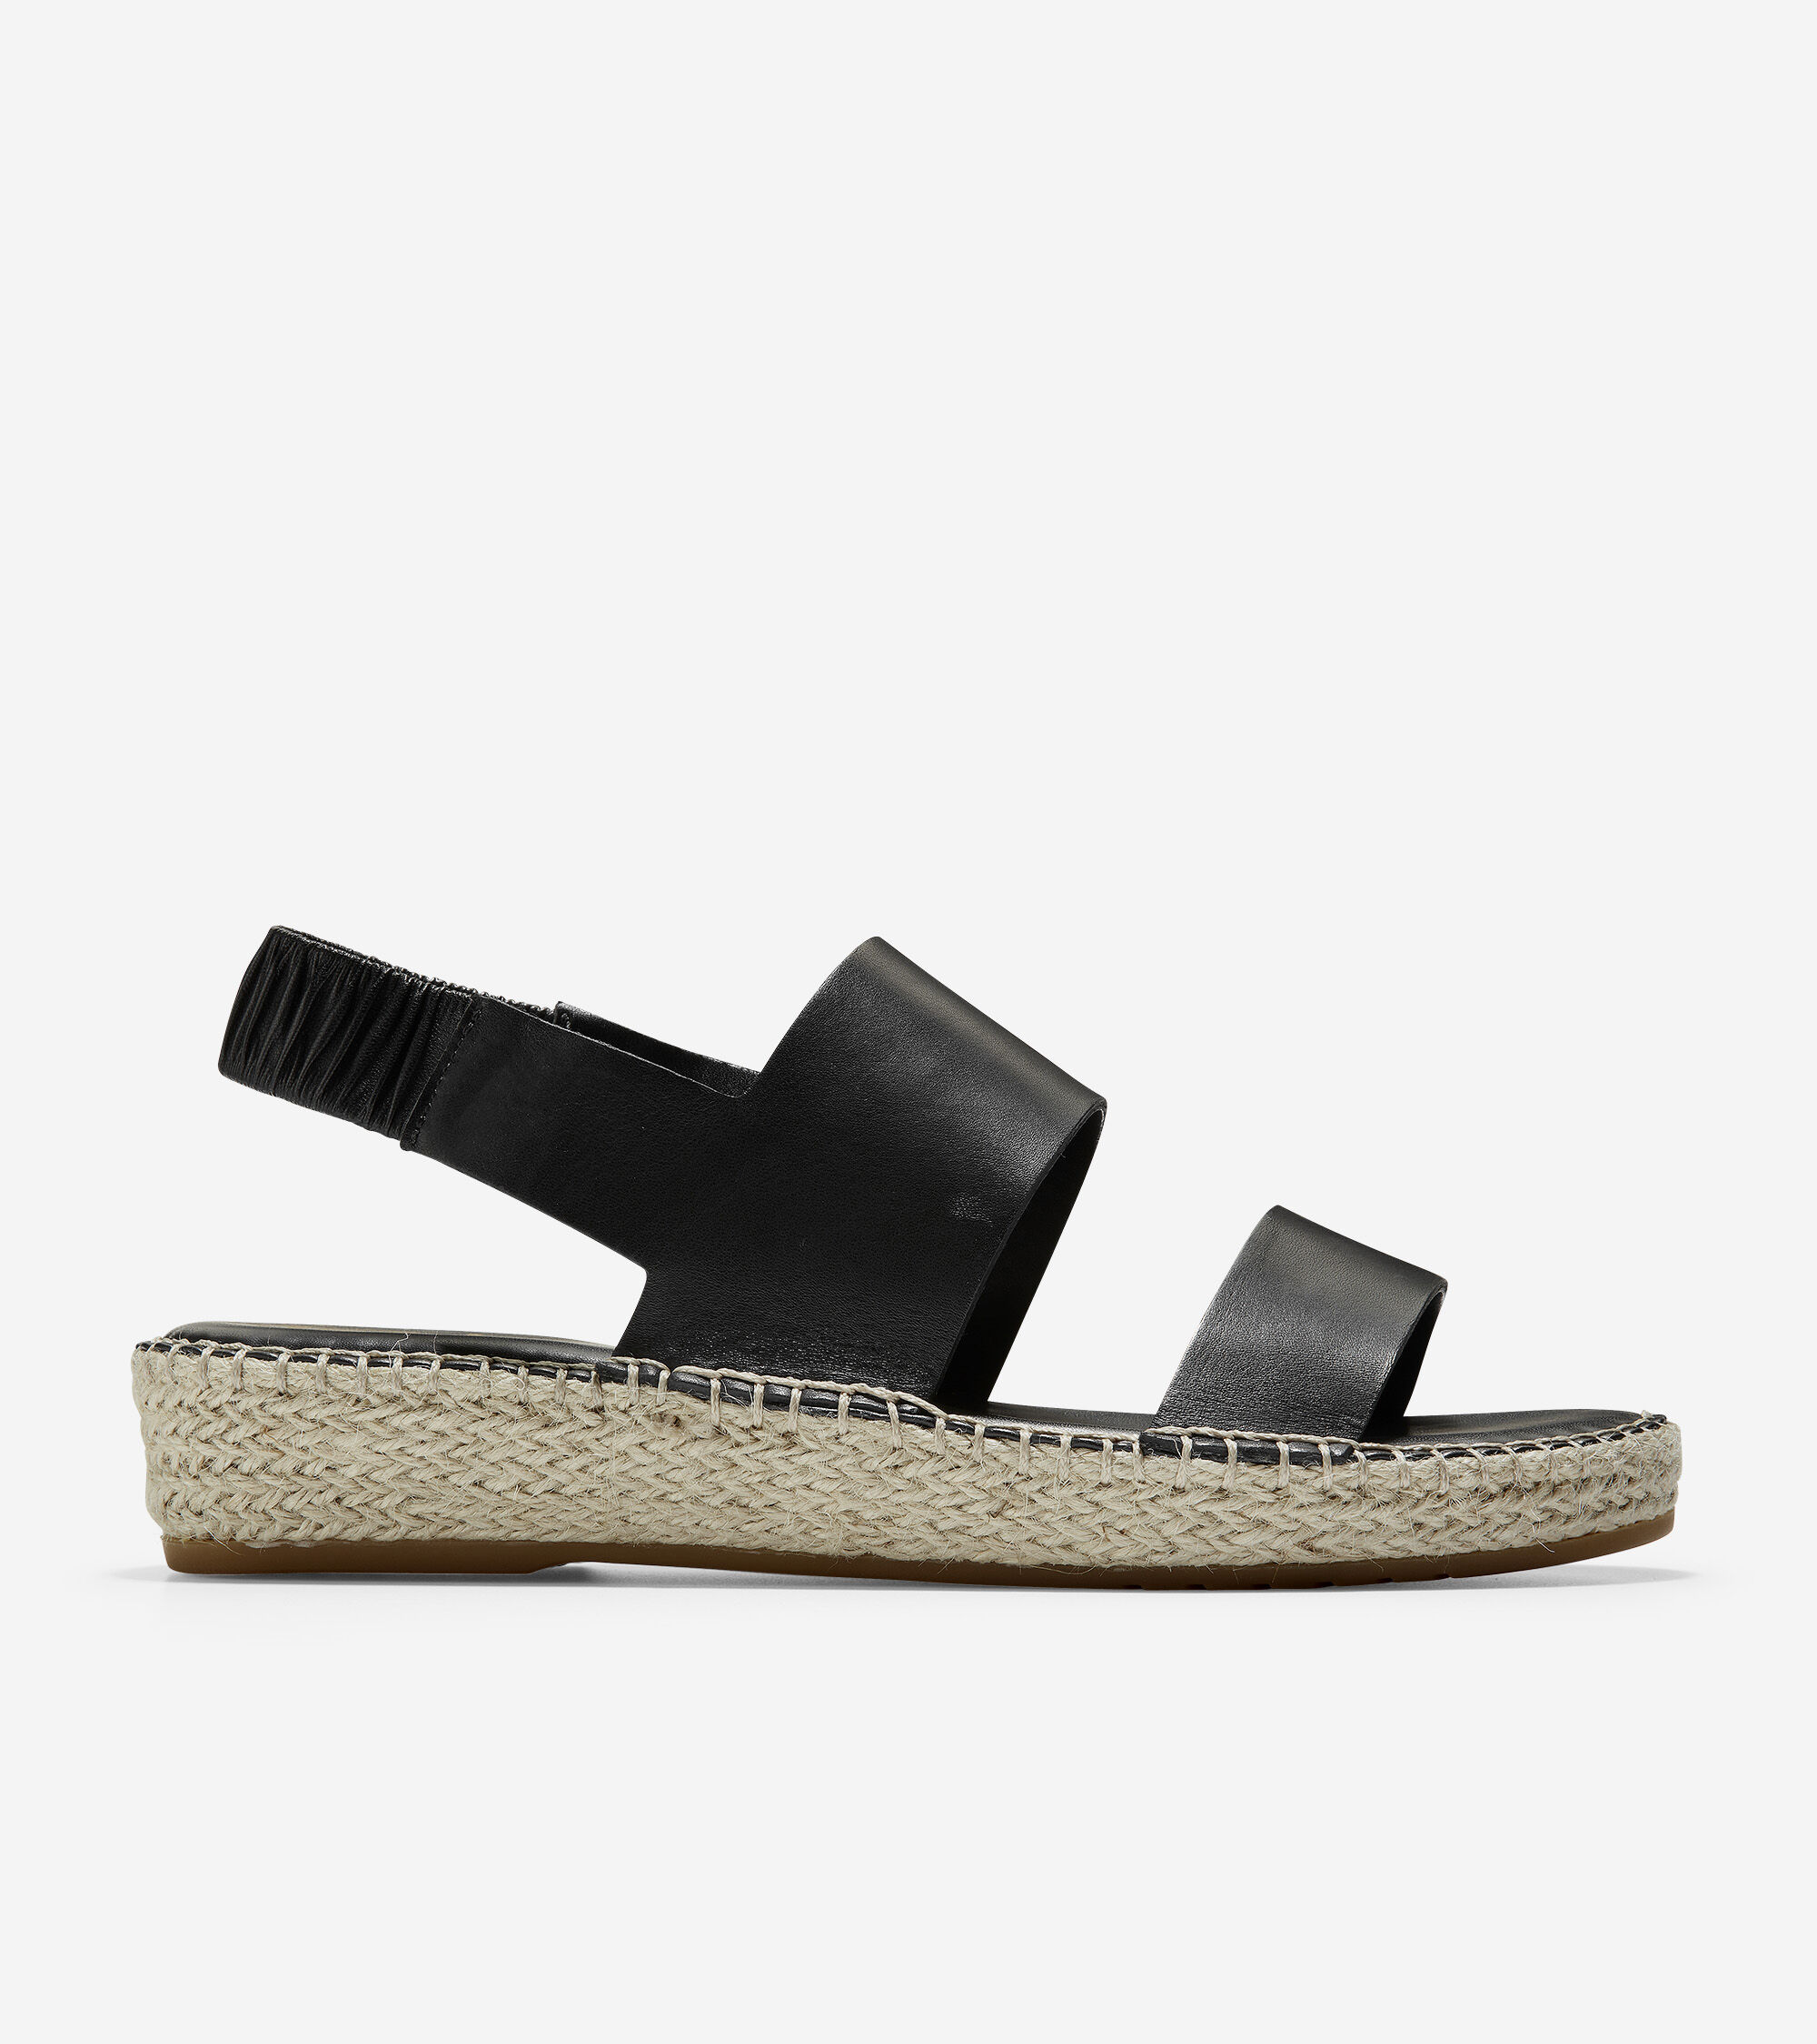 5095f4580c1a Women s Cloudfeel Espadrille Wedges Sandals in Black